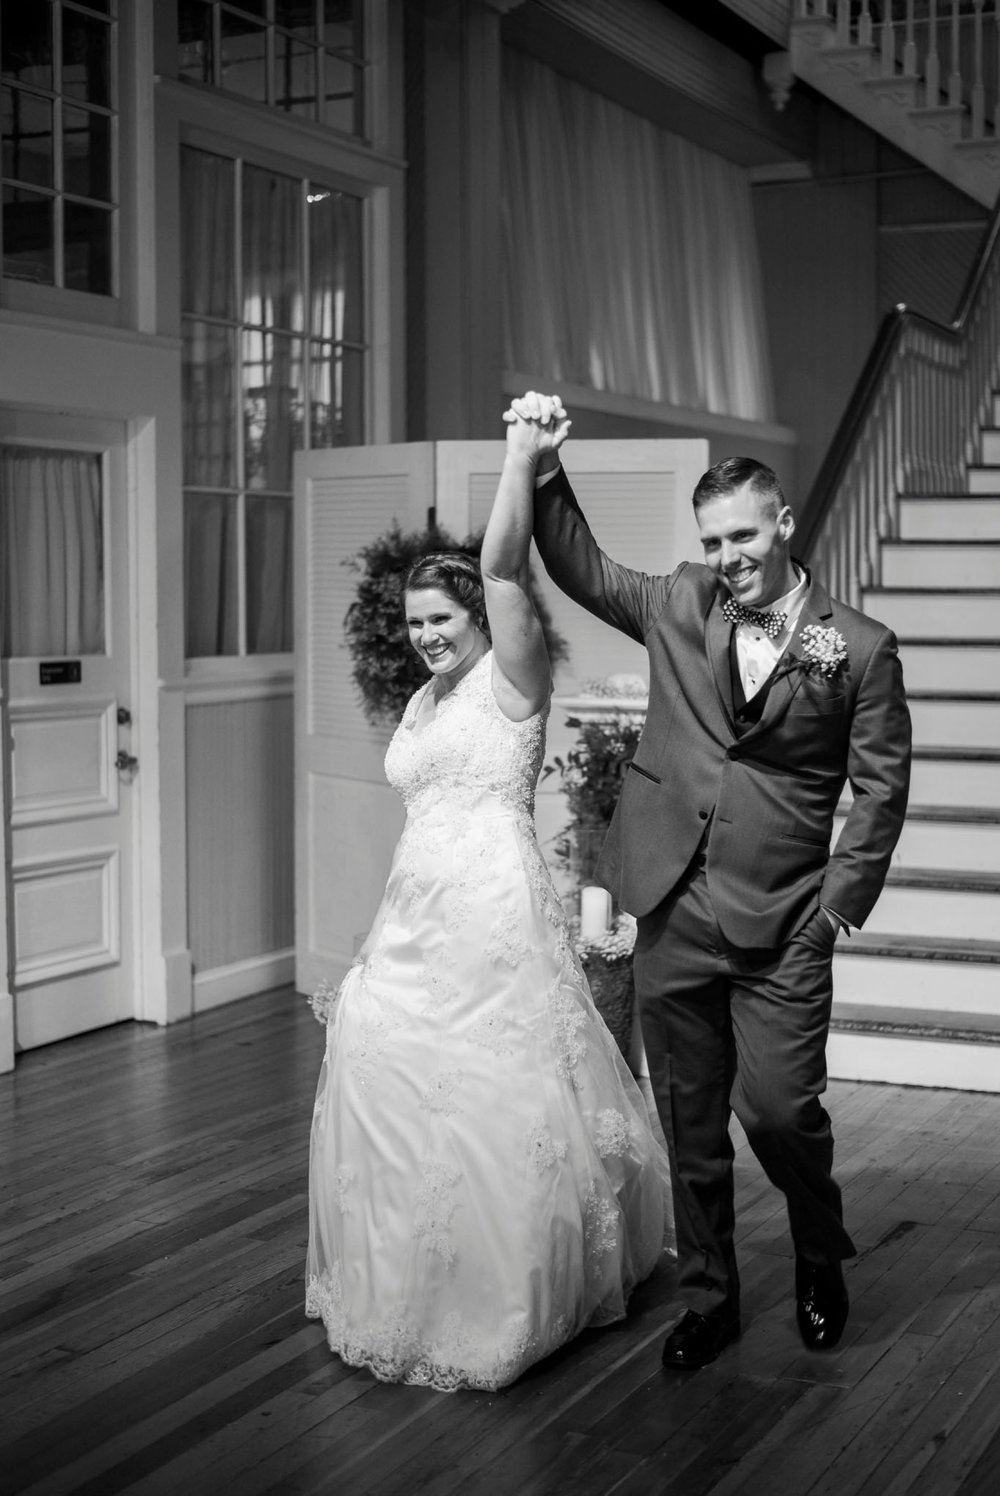 Trescaon8th_DowntownLynchburg_Virginiaweddingphotographer 80.jpg